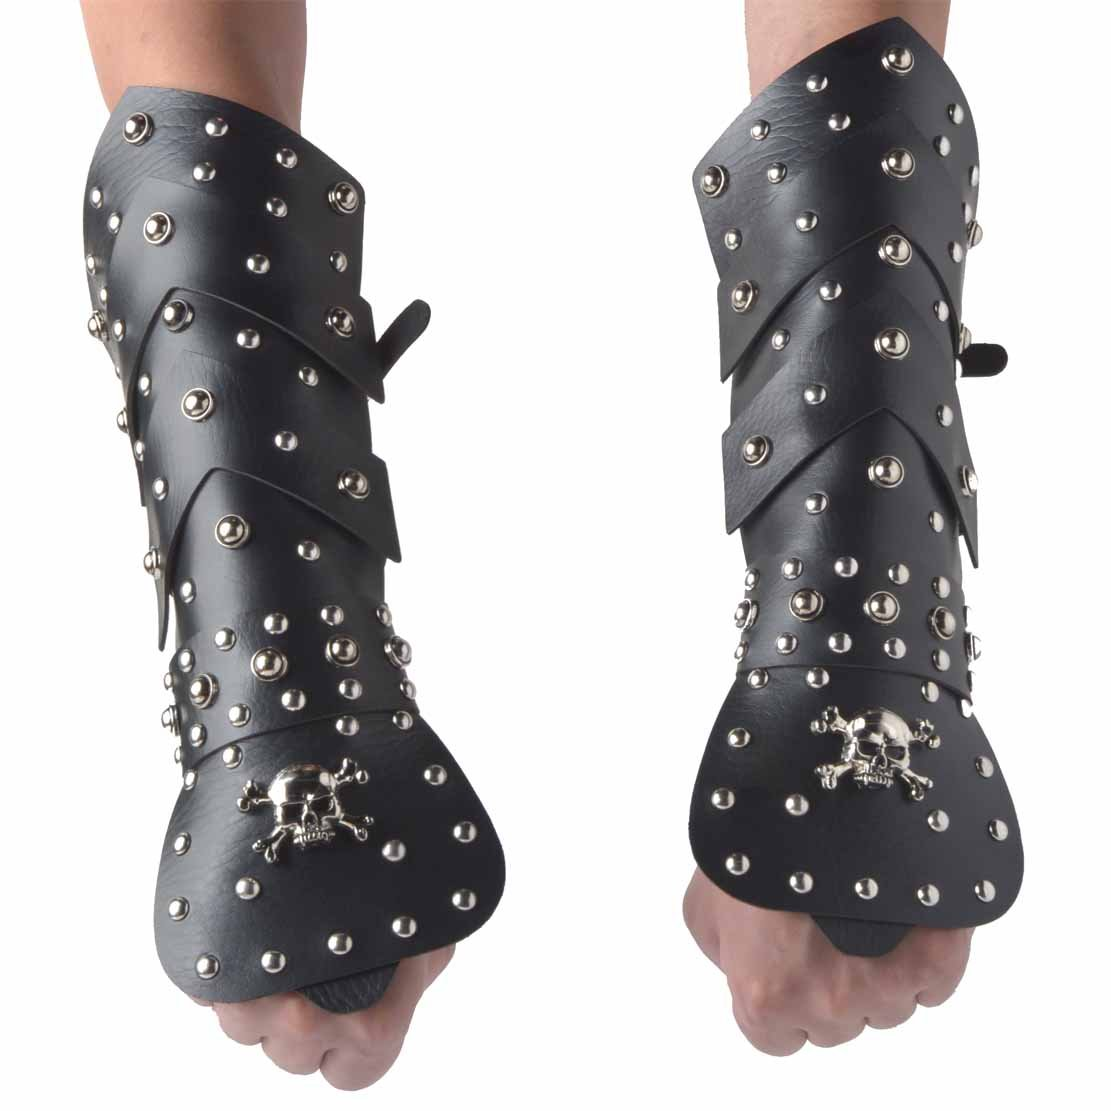 HZMAN 2PACK Black Leather Martial Arts Forearm Guards/Gauntlet Arm Armor with Metal Skull Spikes